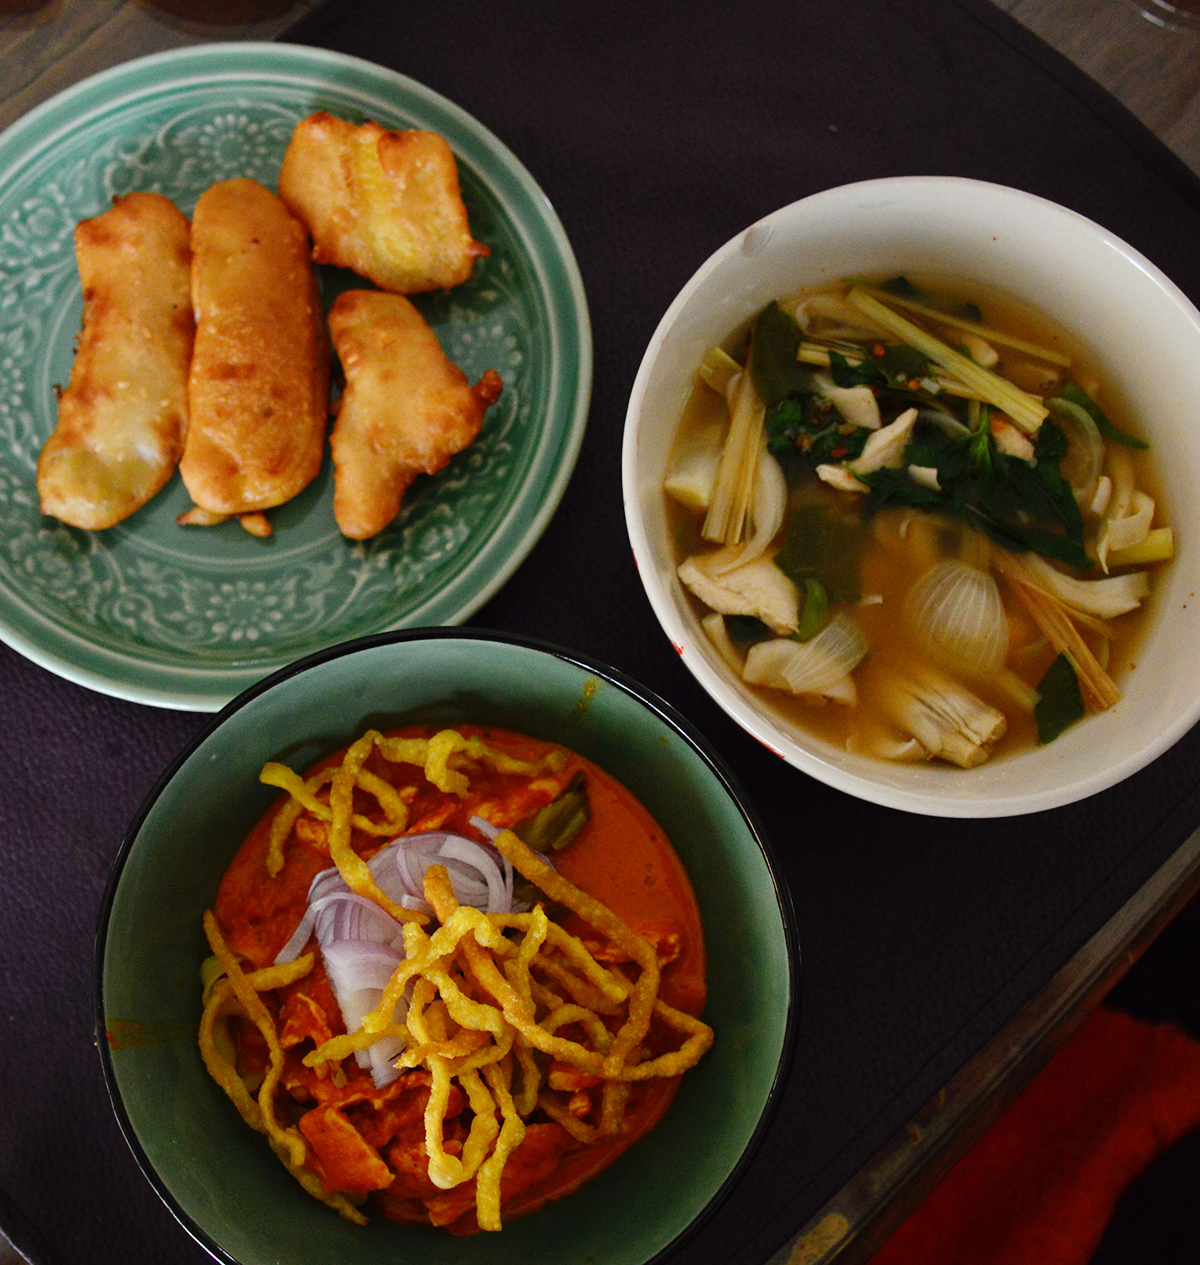 Thai food Asia Scenic cooking school Double-Barrelled Travel